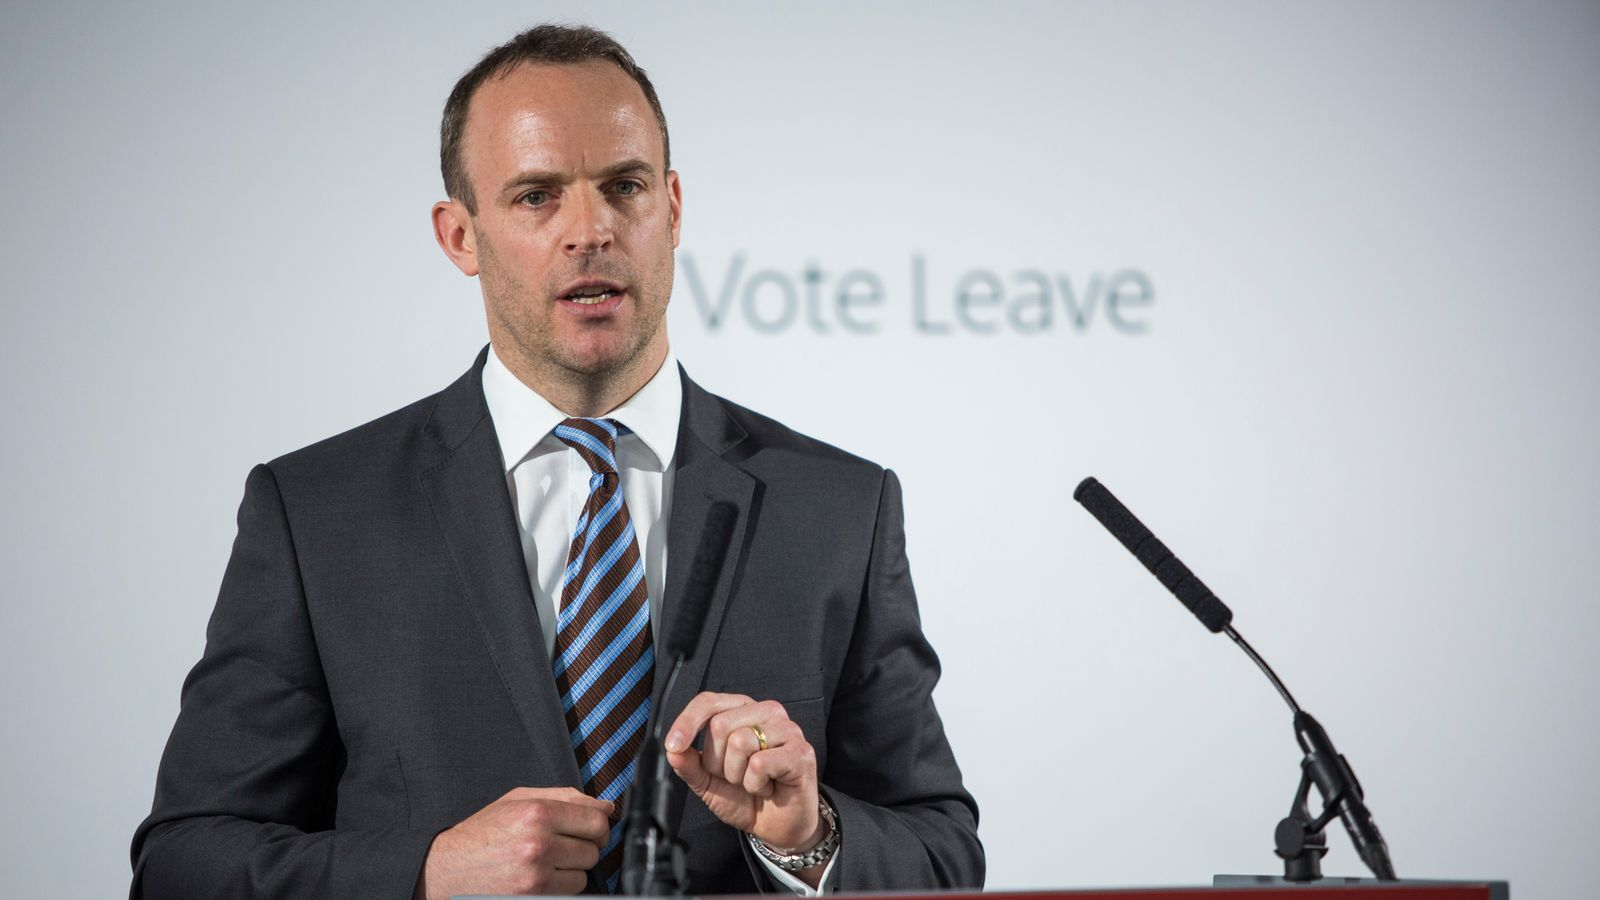 EU's Brexit opposition fuelling far-right, Dominic Raab suggests